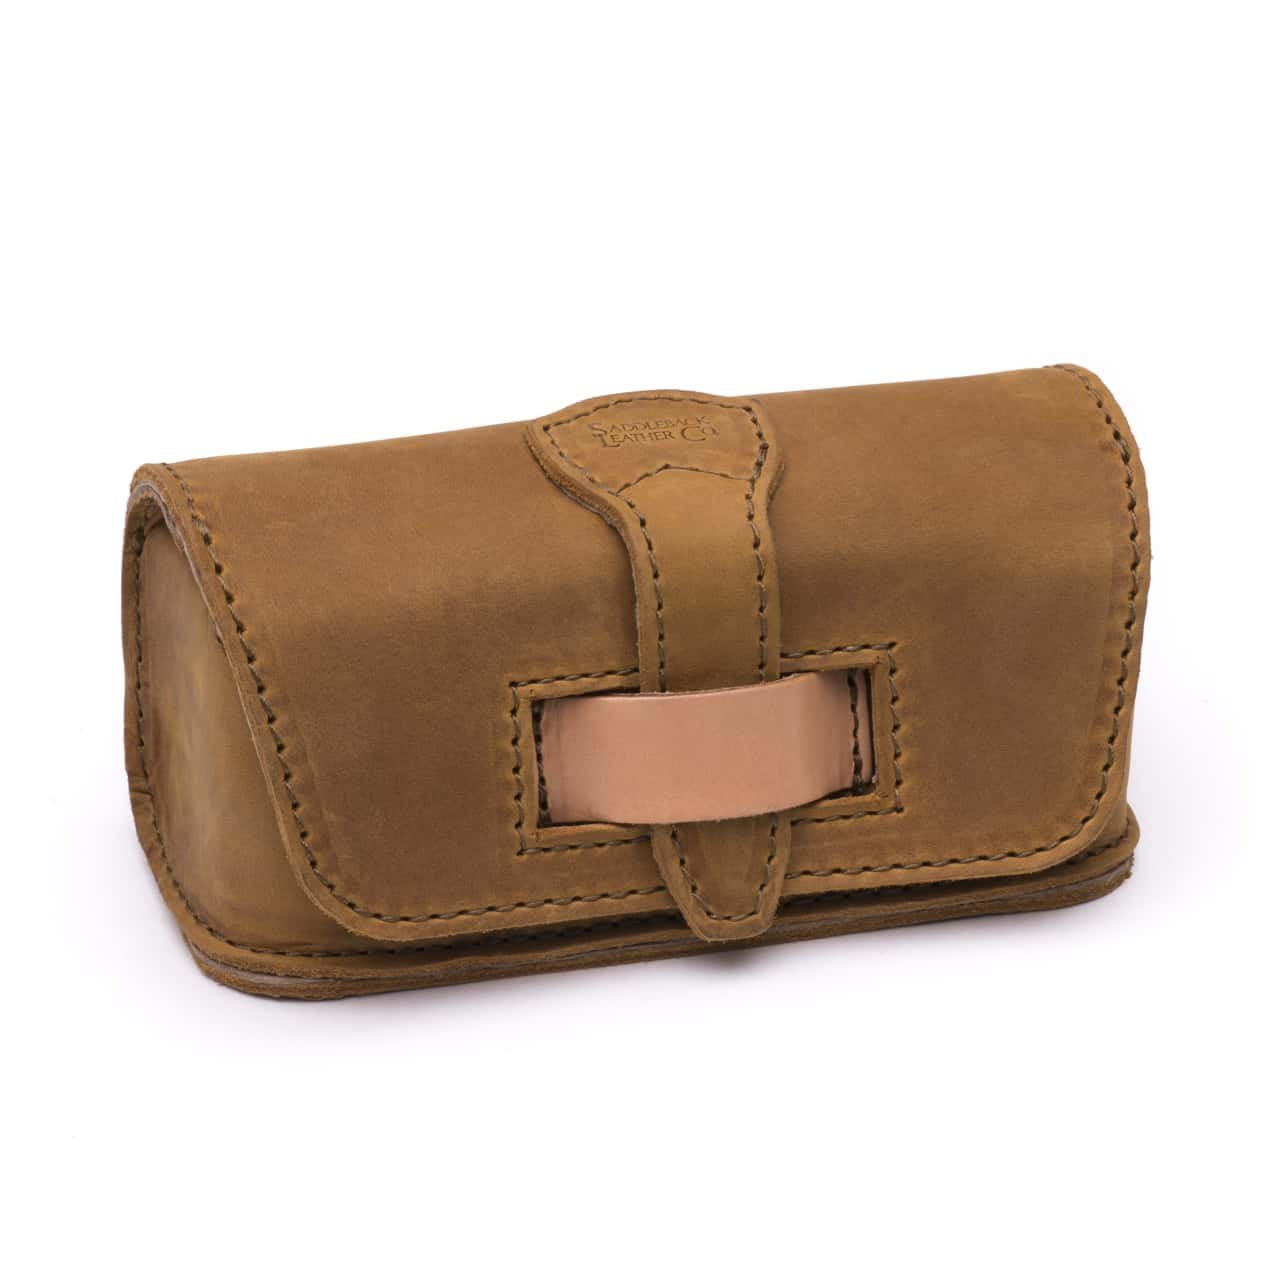 Saddleback Leather Co. Hard Protective Leather Glasses, Pencil or Makeup Case Includes 100 Year Warranty by Saddleback Leather Co.